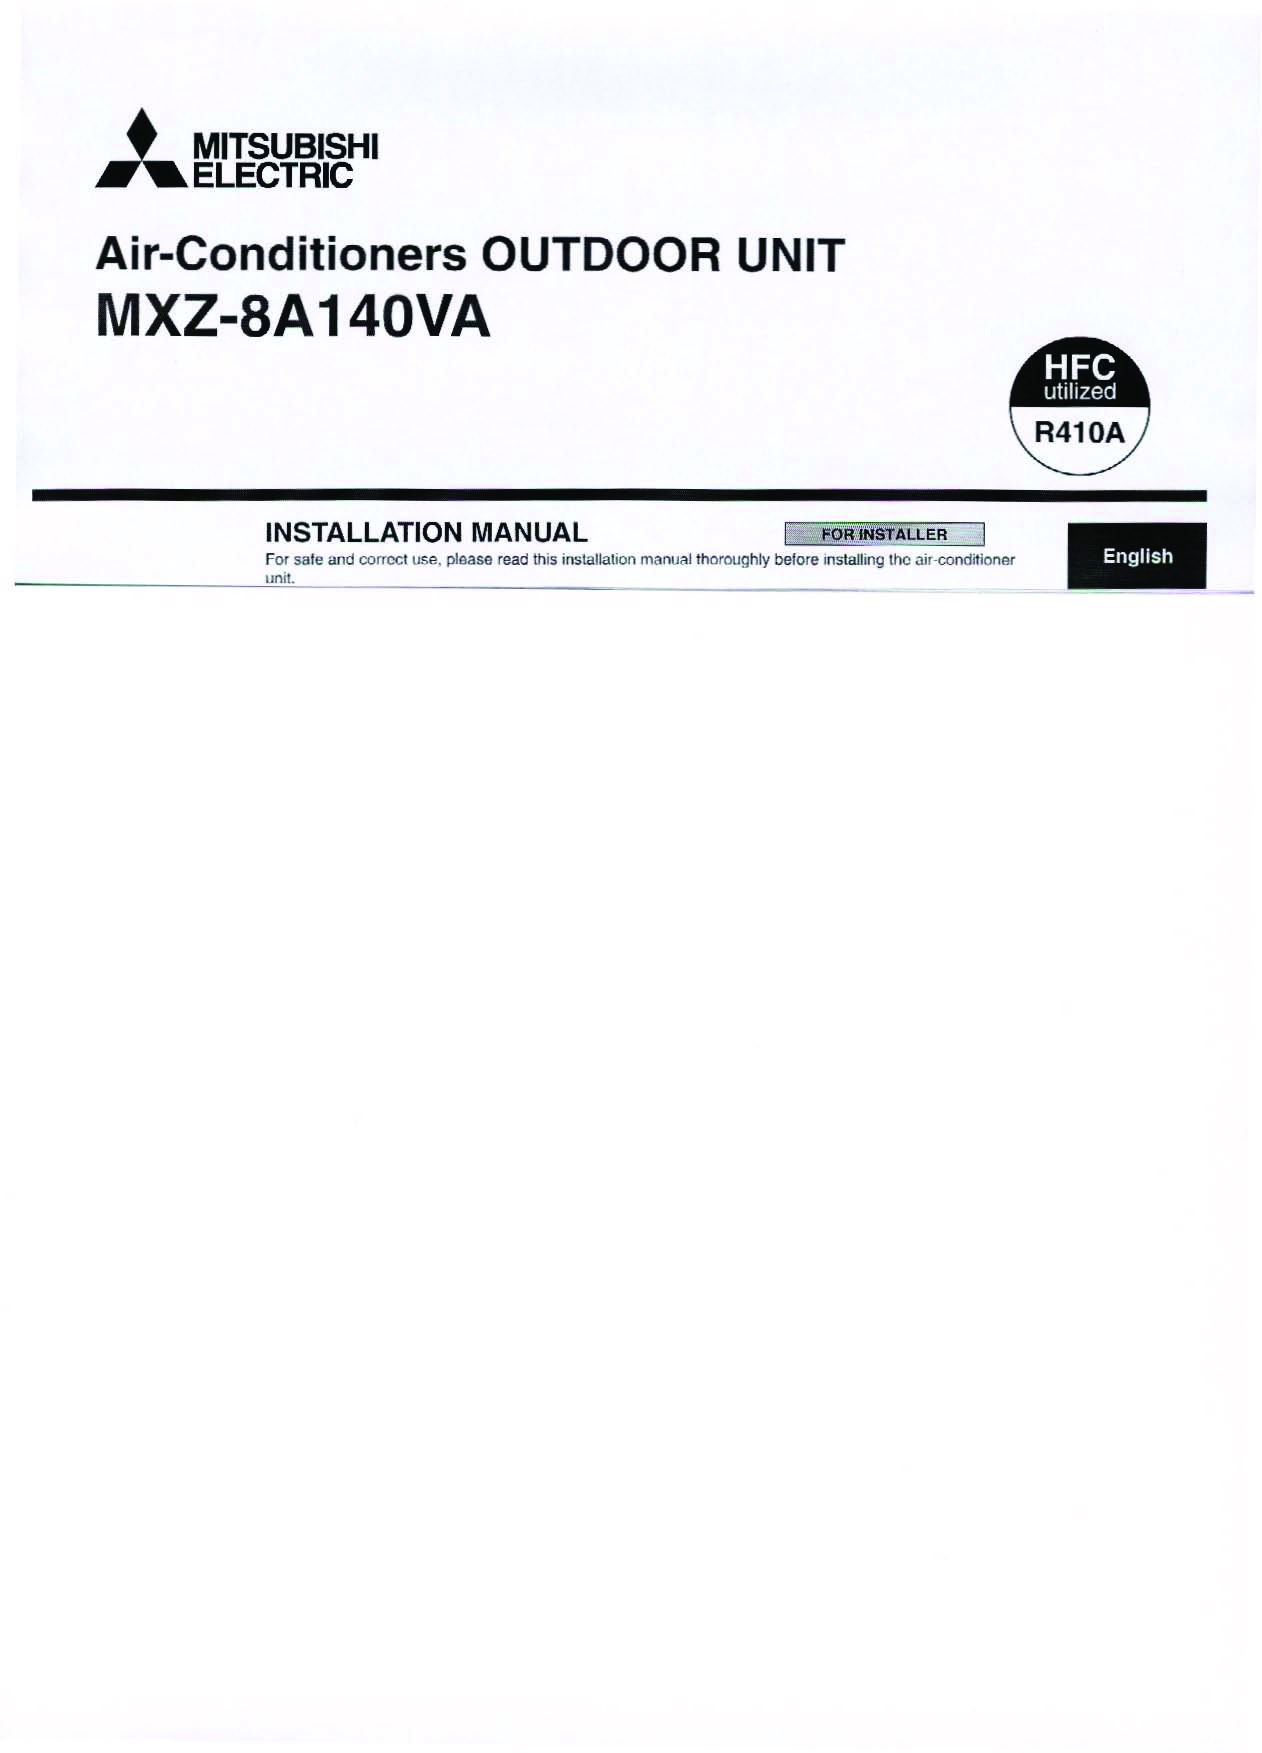 Mitsubishi Mr Slim PEA MXZ 8A140VA Air Conditioner Owners Installation Manual 1 mitsubishi mr slim pea mxz 8a140va air conditioner installation manual